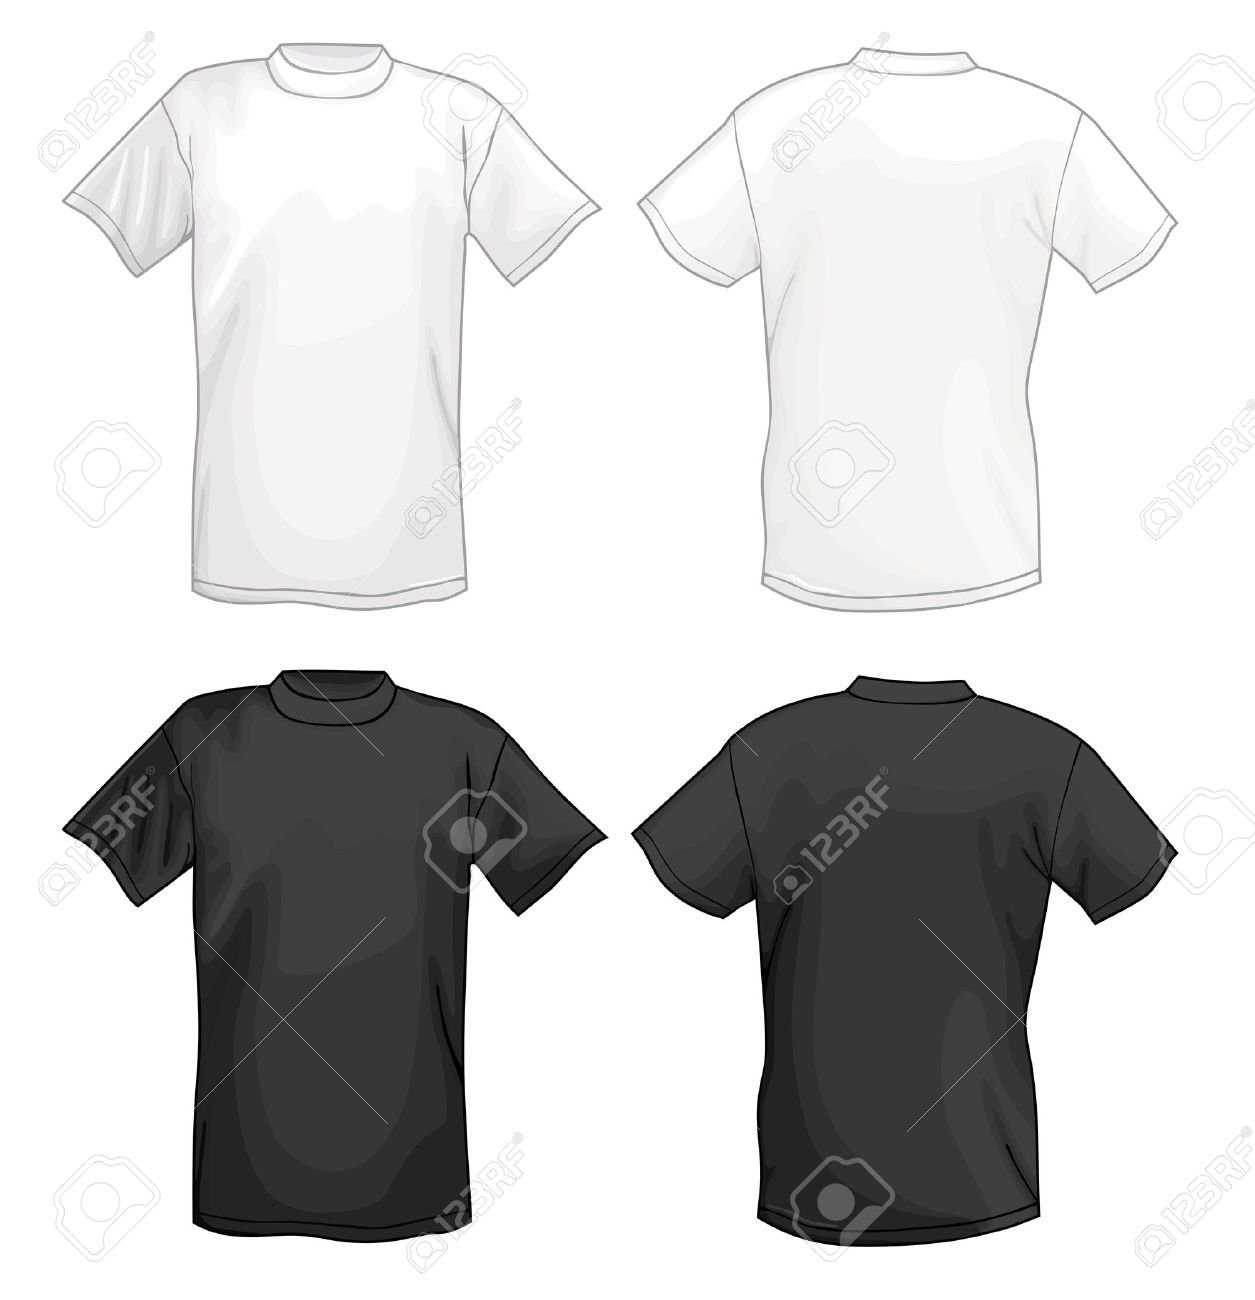 Black t shirt design template - Black T Shirt Template Hd White Vector T Shirt Design Template Front Back Isolated On